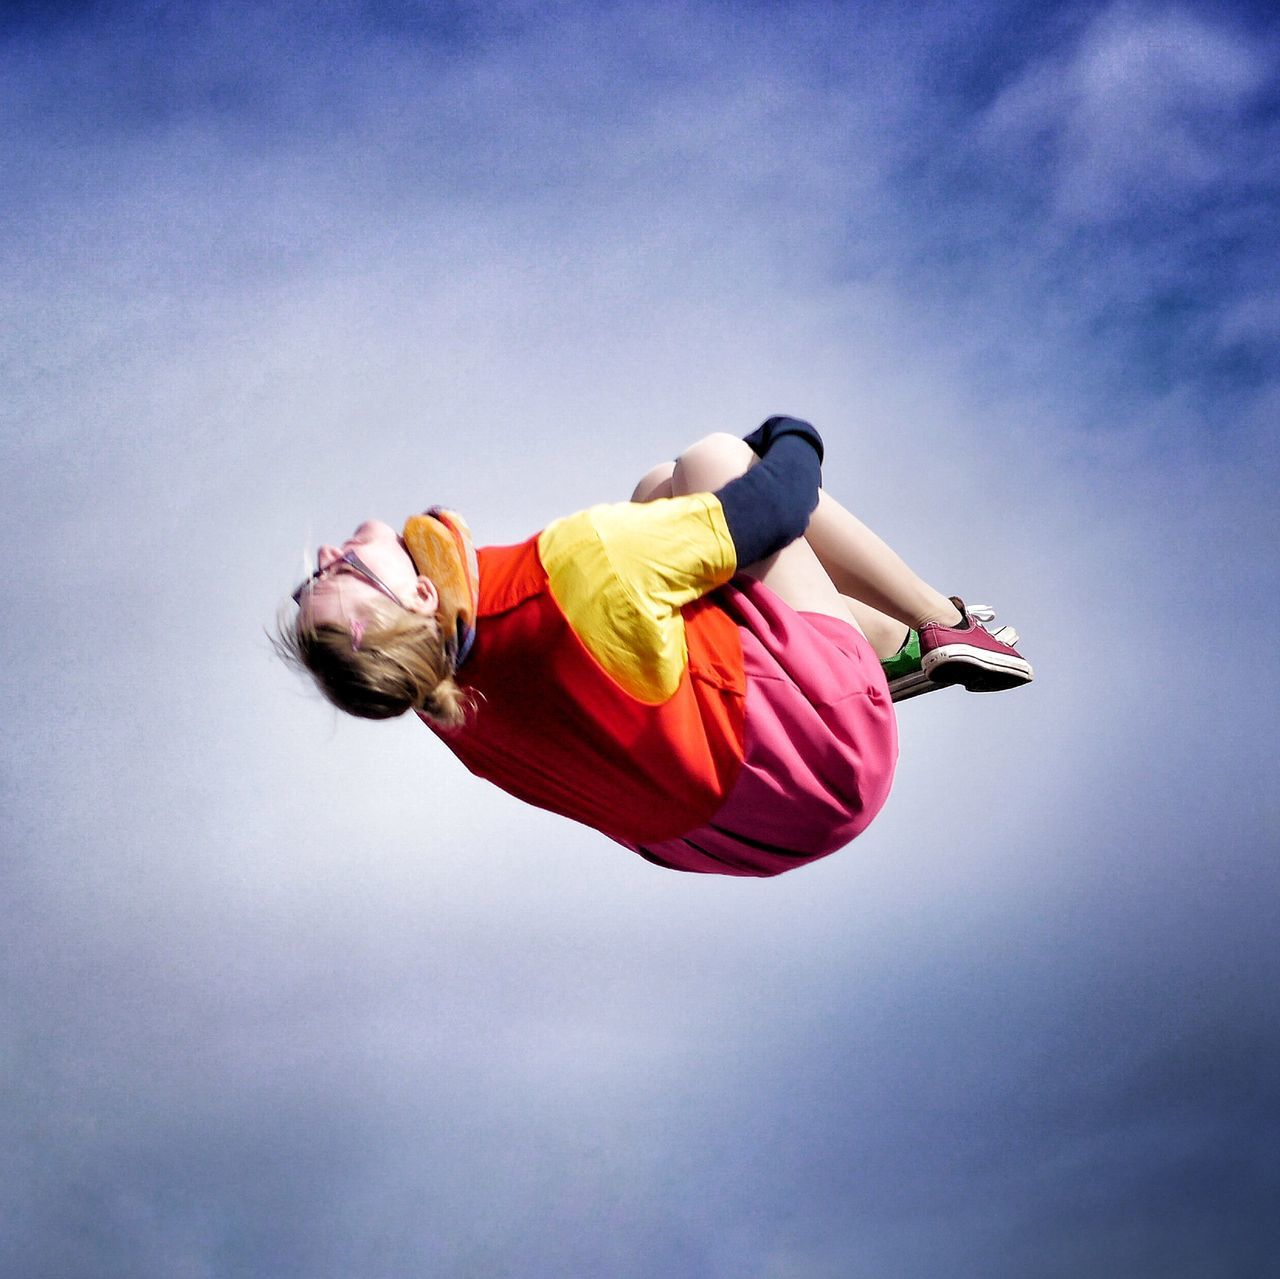 full length, vitality, adults only, mid-air, one person, sky, young adult, freedom, jumping, one man only, agility, people, adventure, adult, challenge, outdoors, sports clothing, only men, day, parachute